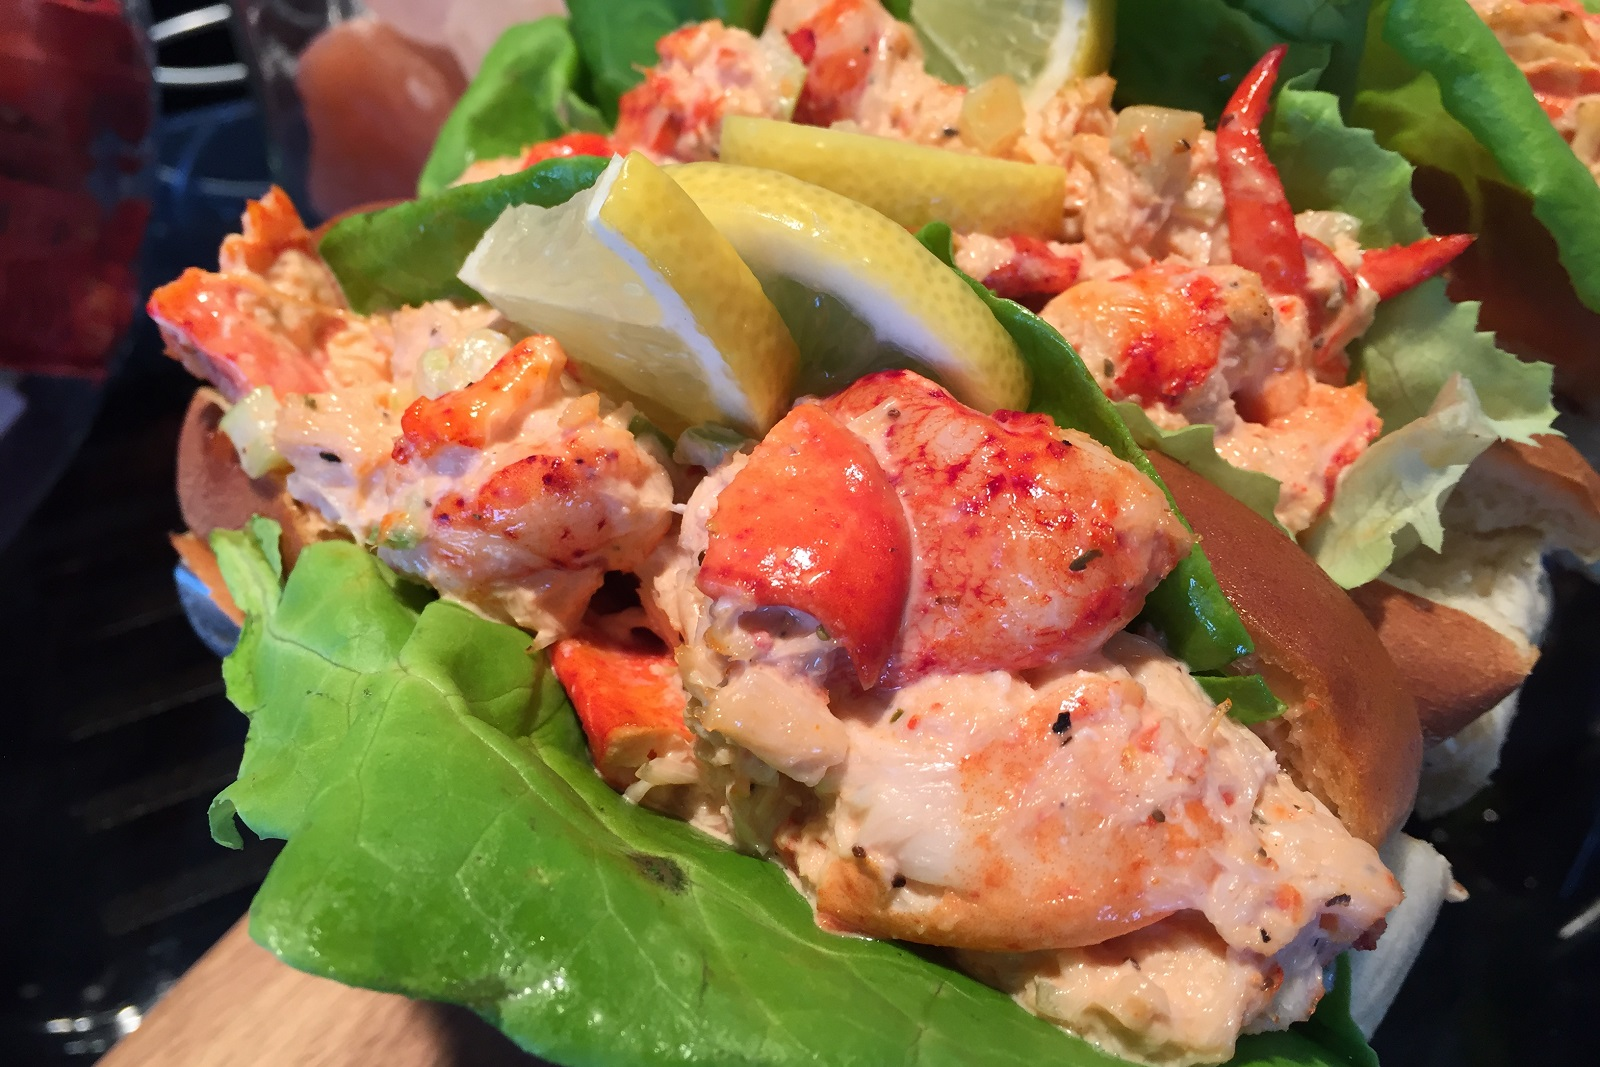 One of the new foods available in the suites is a lobster roll, made with lobster salad and lemon on grilled split-top buns. (Aaron Besecker/Buffalo News)